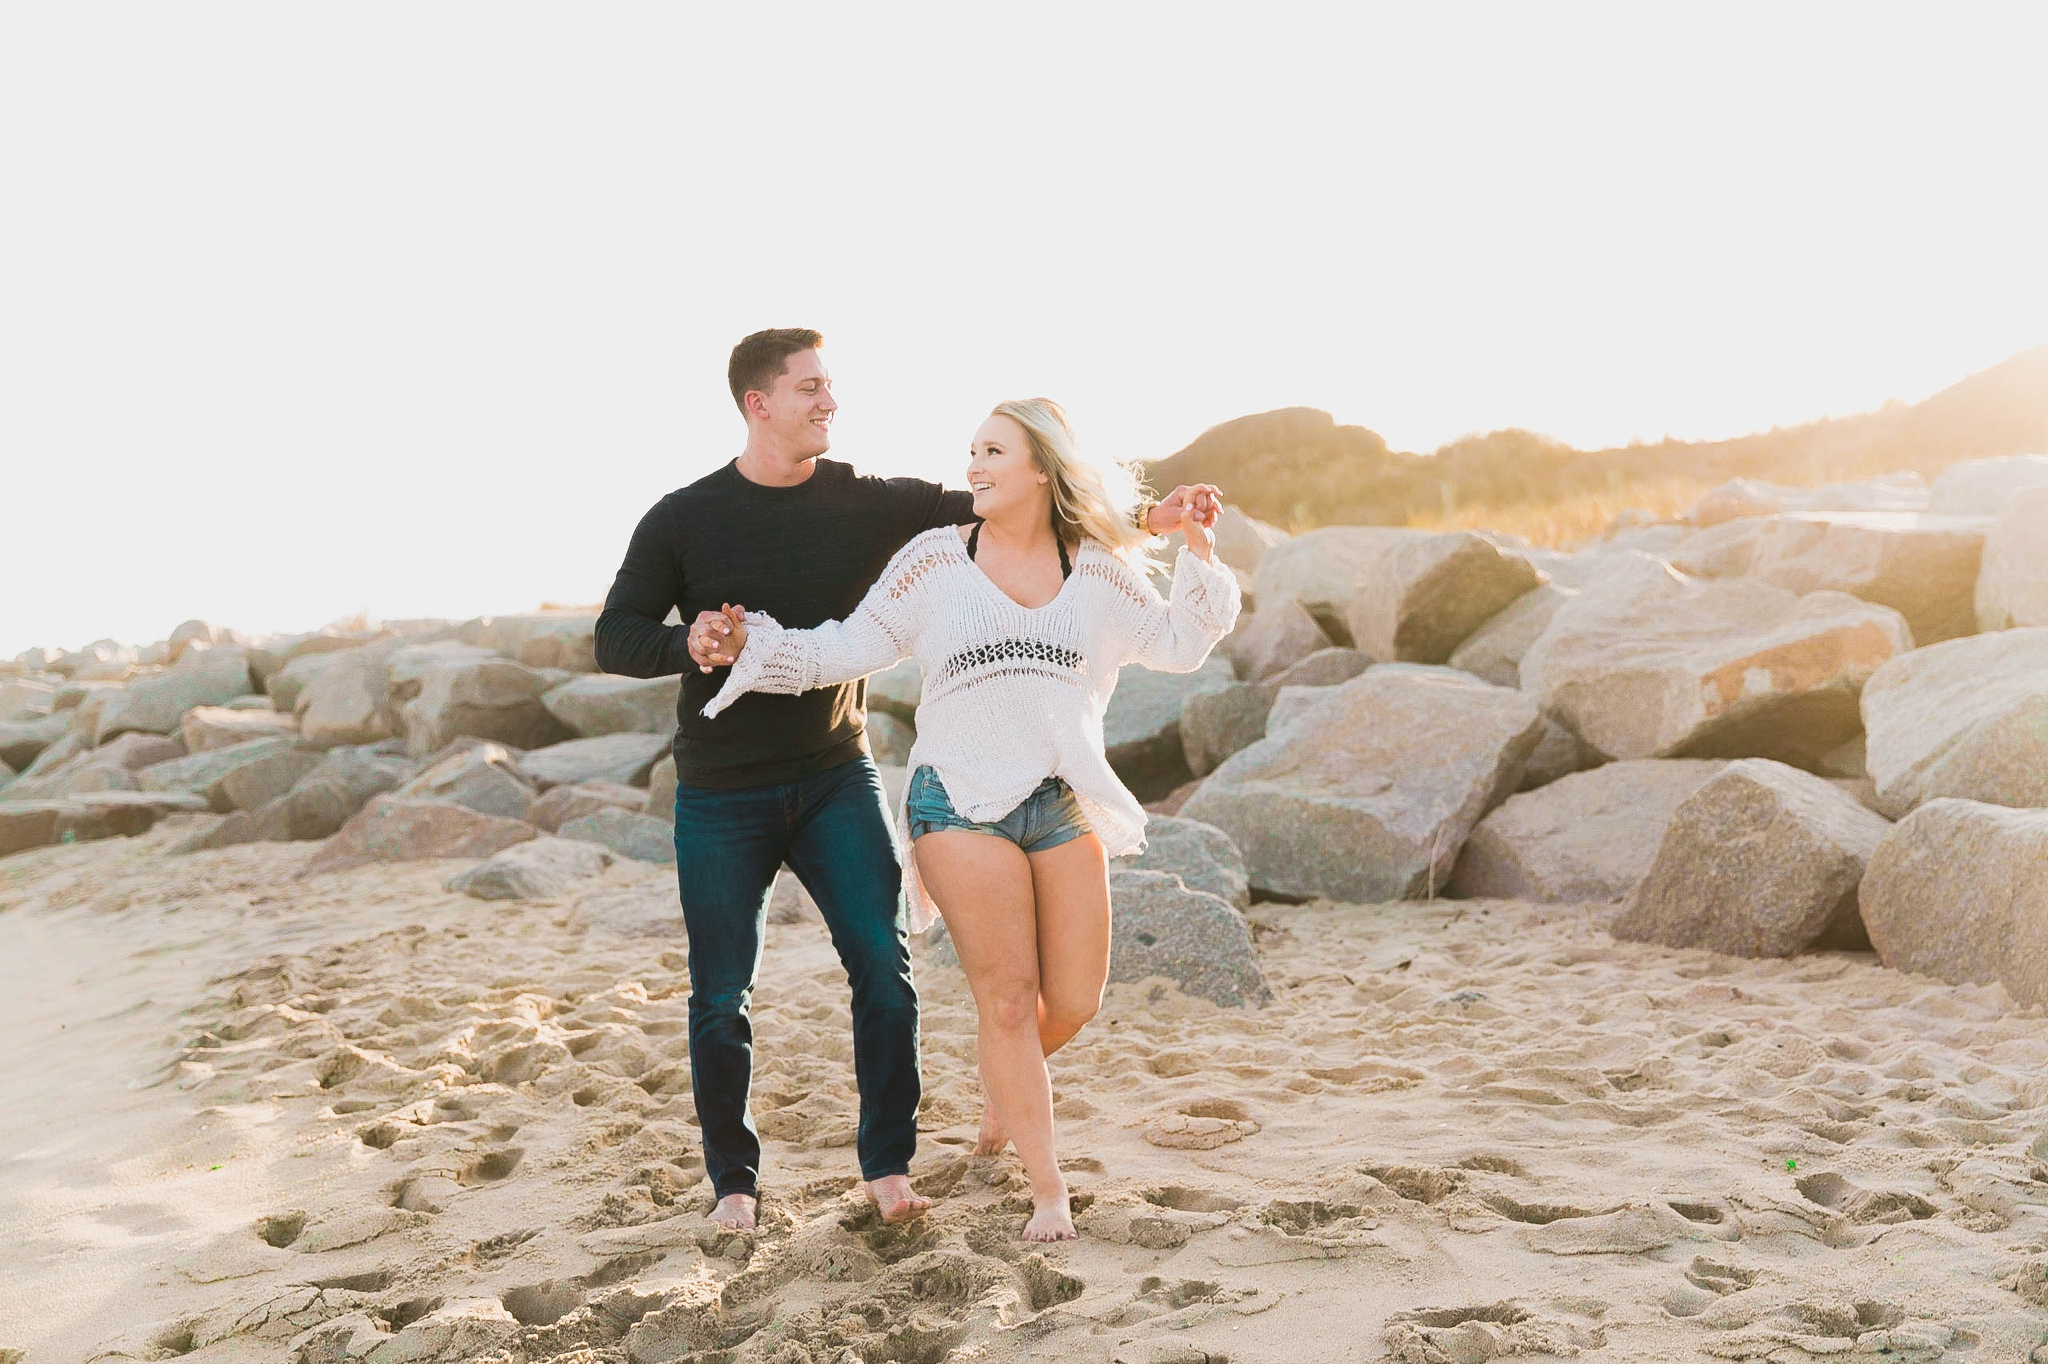 couple being playful at the beach and doing the titanic flying pose at sunset during golden hour light - girl wearing ripped jeans shorts and a white free people sweater - Casual Beach Engagement Photography Session - Honolulu Oahu Hawaii Wedding Photographer - Johanna Dye